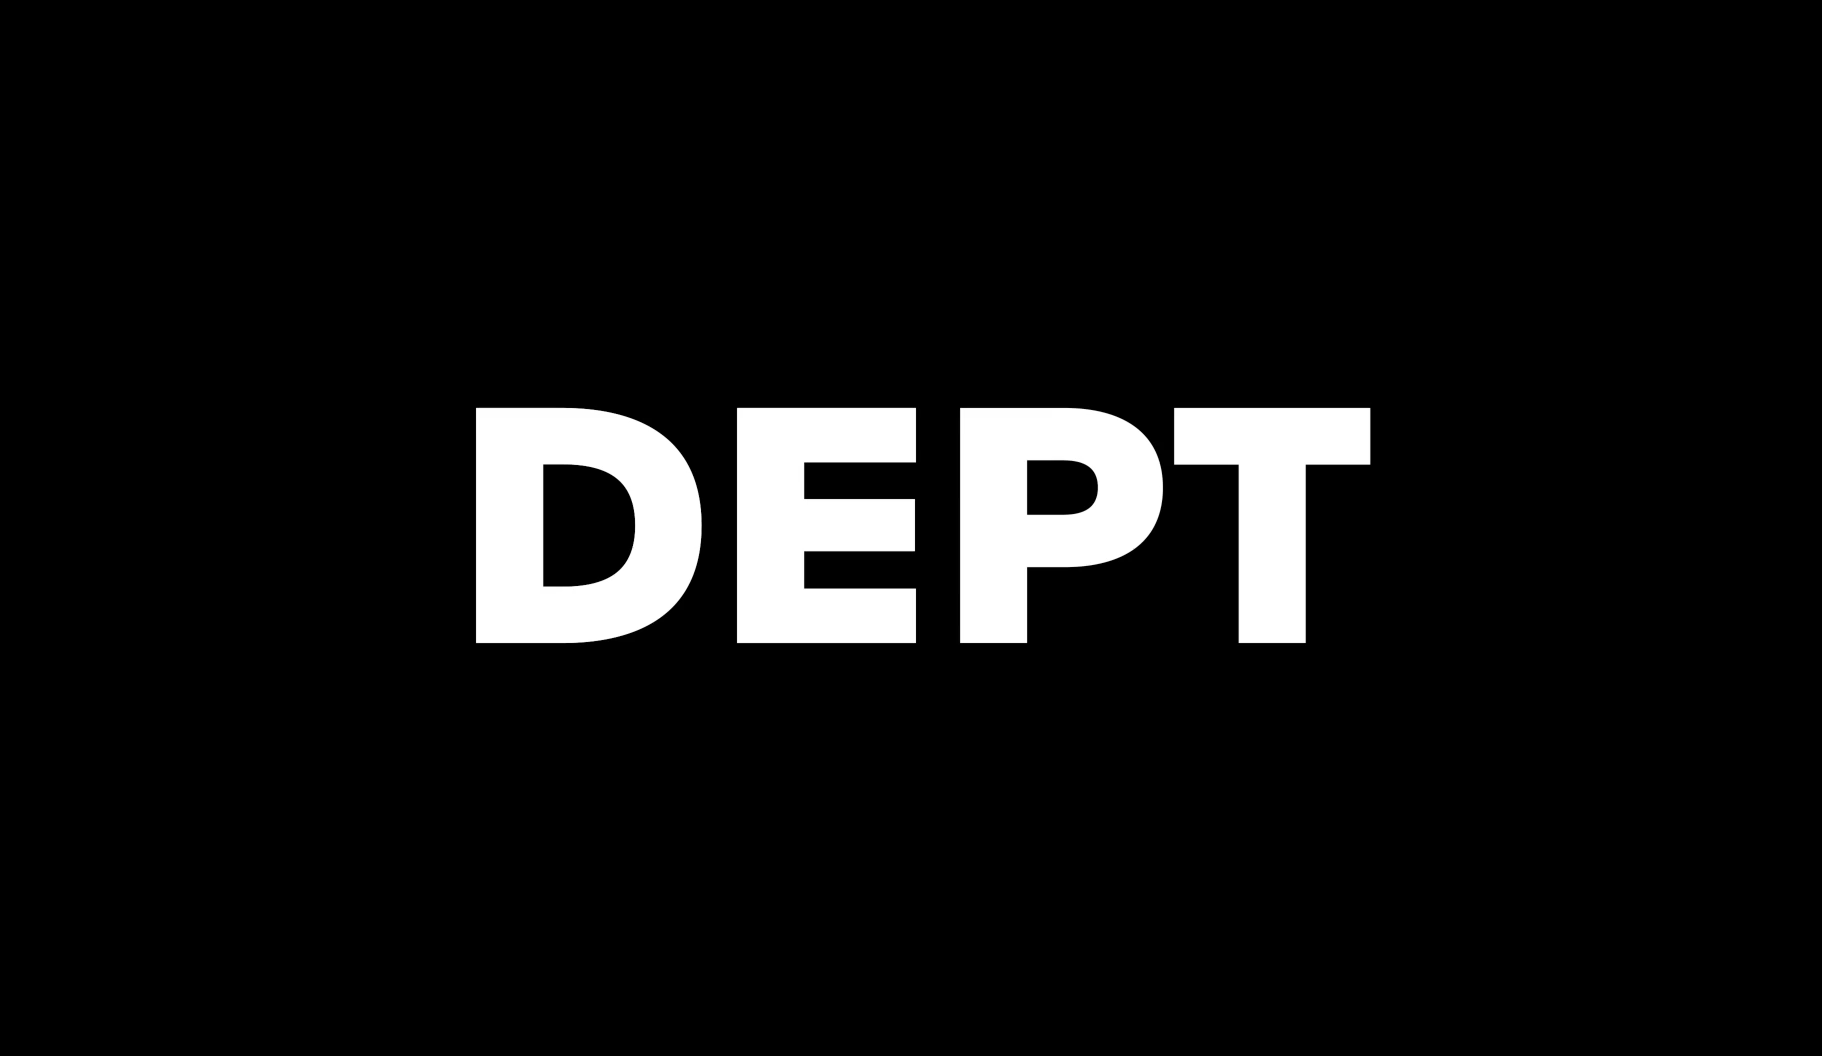 Today Digital Agency A Friend Of Mine And Its Sister Agencies Launched Dept New Overall Brand That Will Serve As The Foundation For Networks Growth